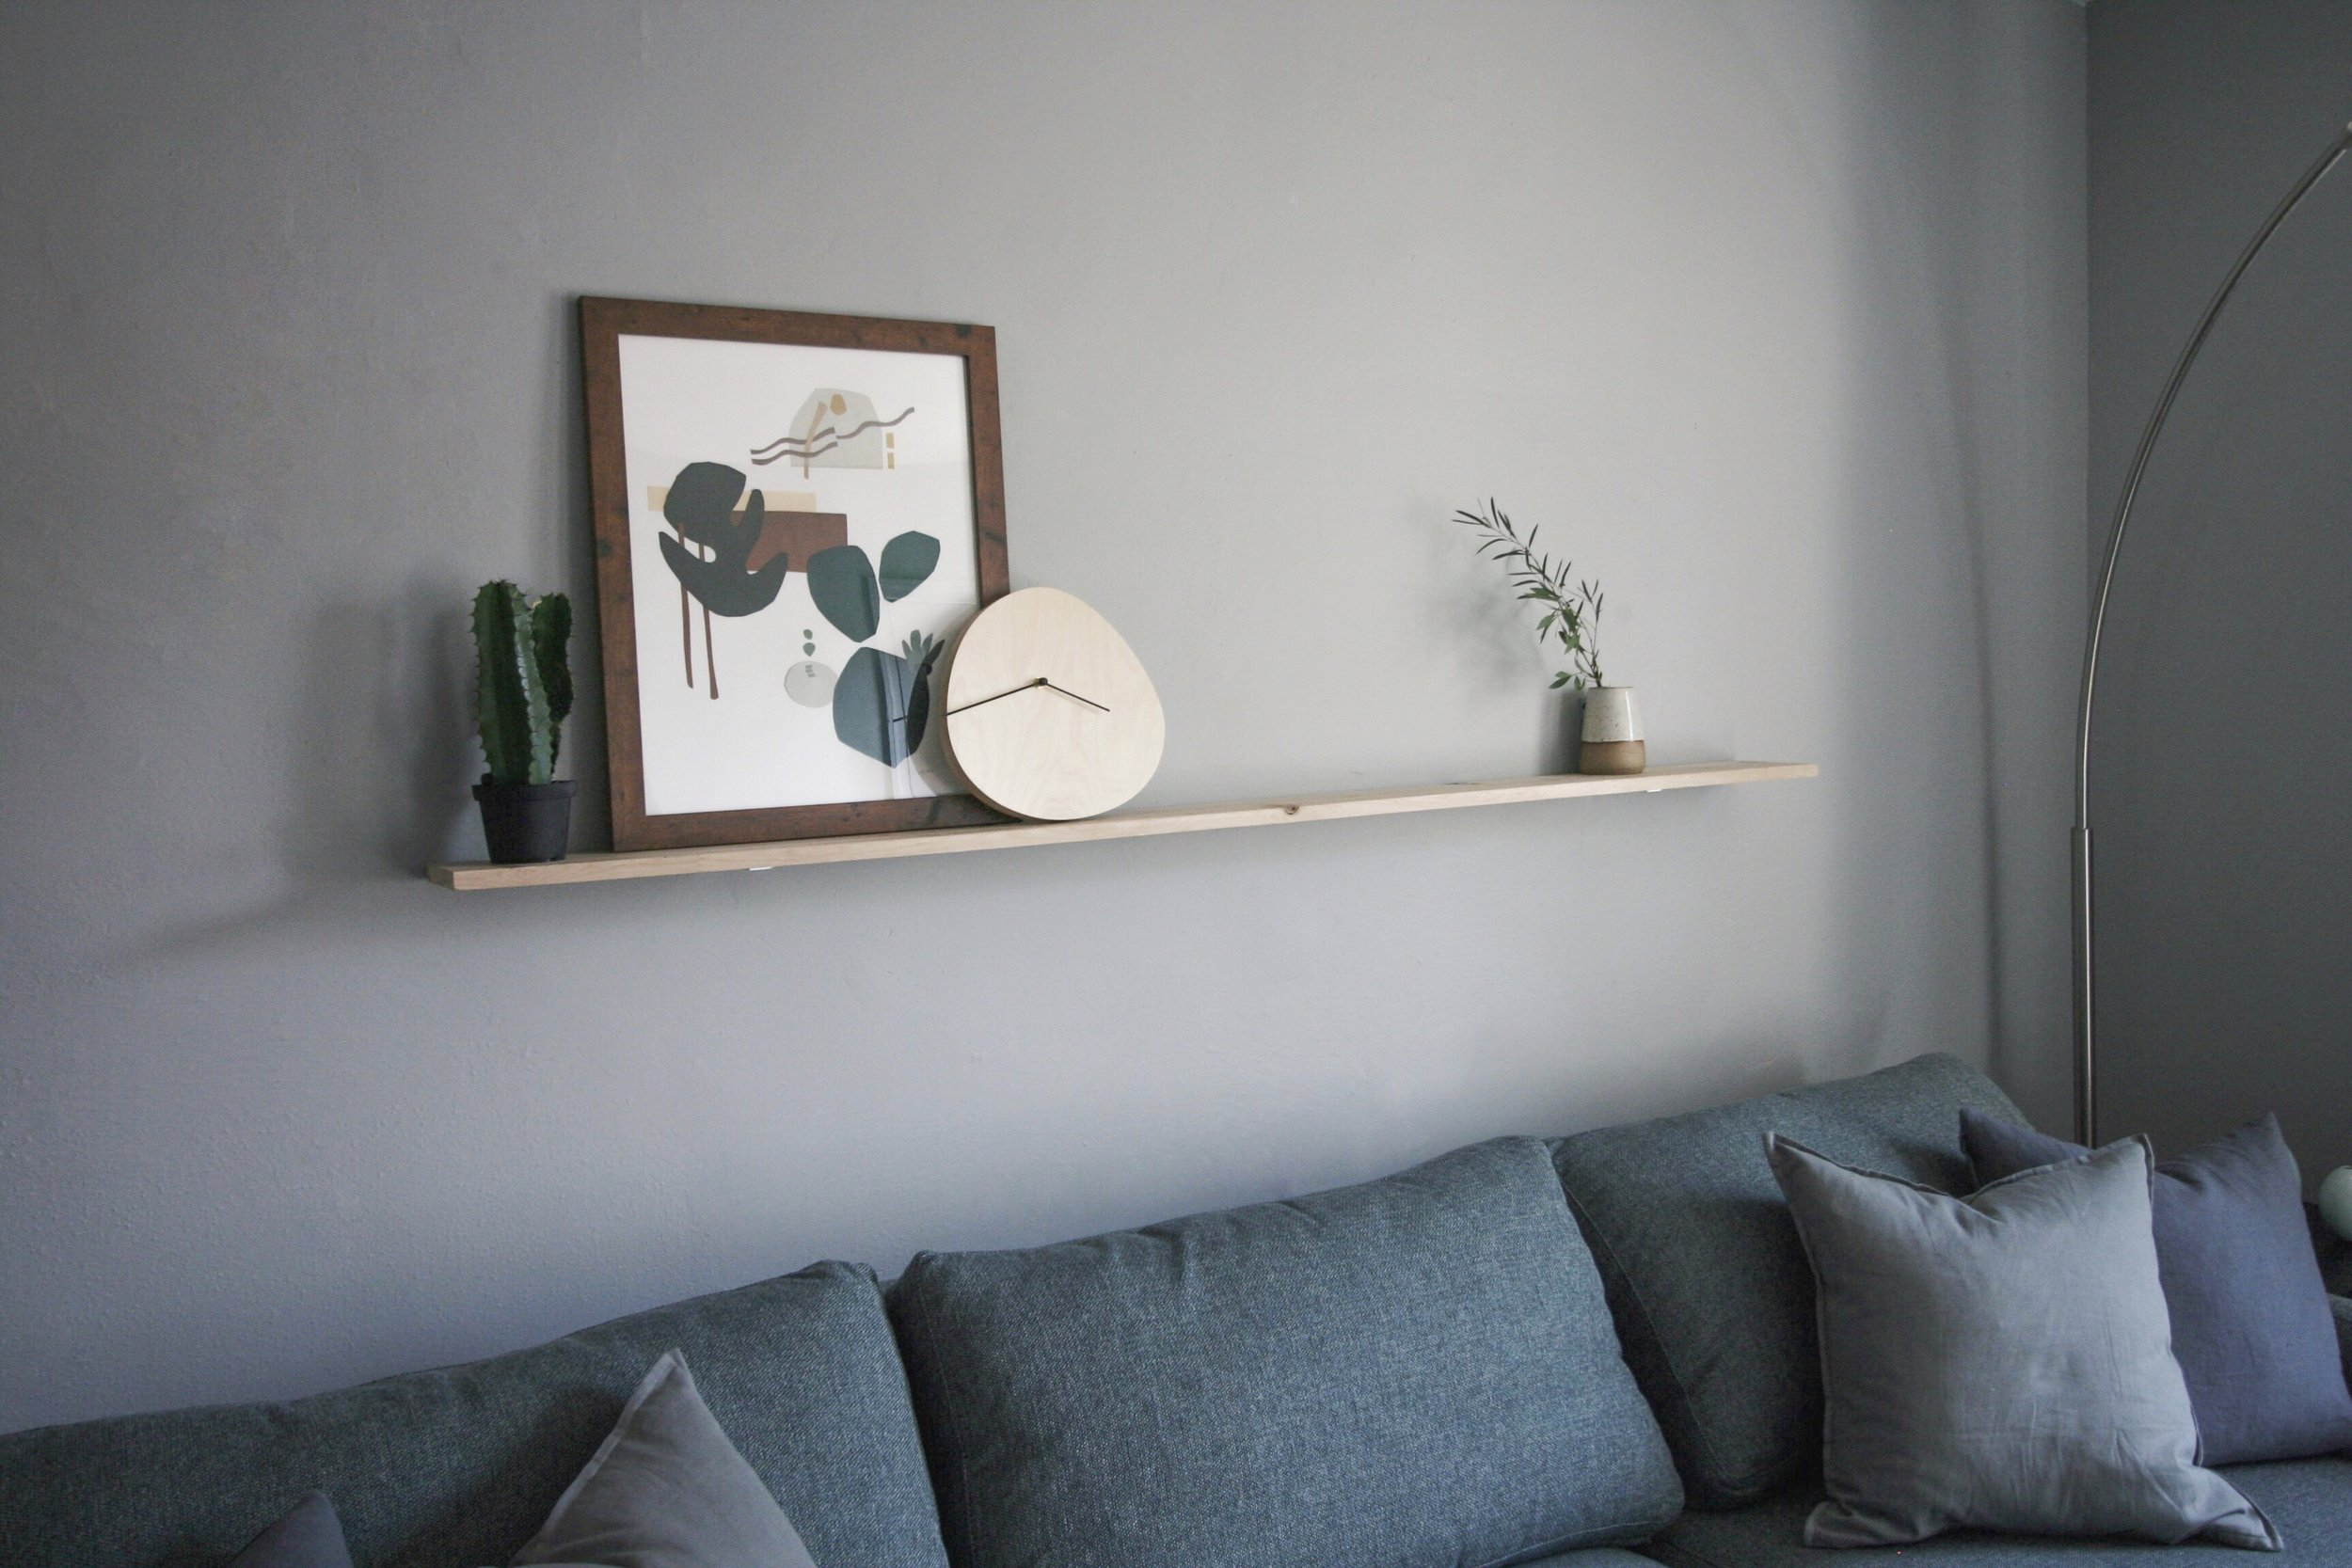 I installed this floating shelf to feature a few special things including an original collage artwork